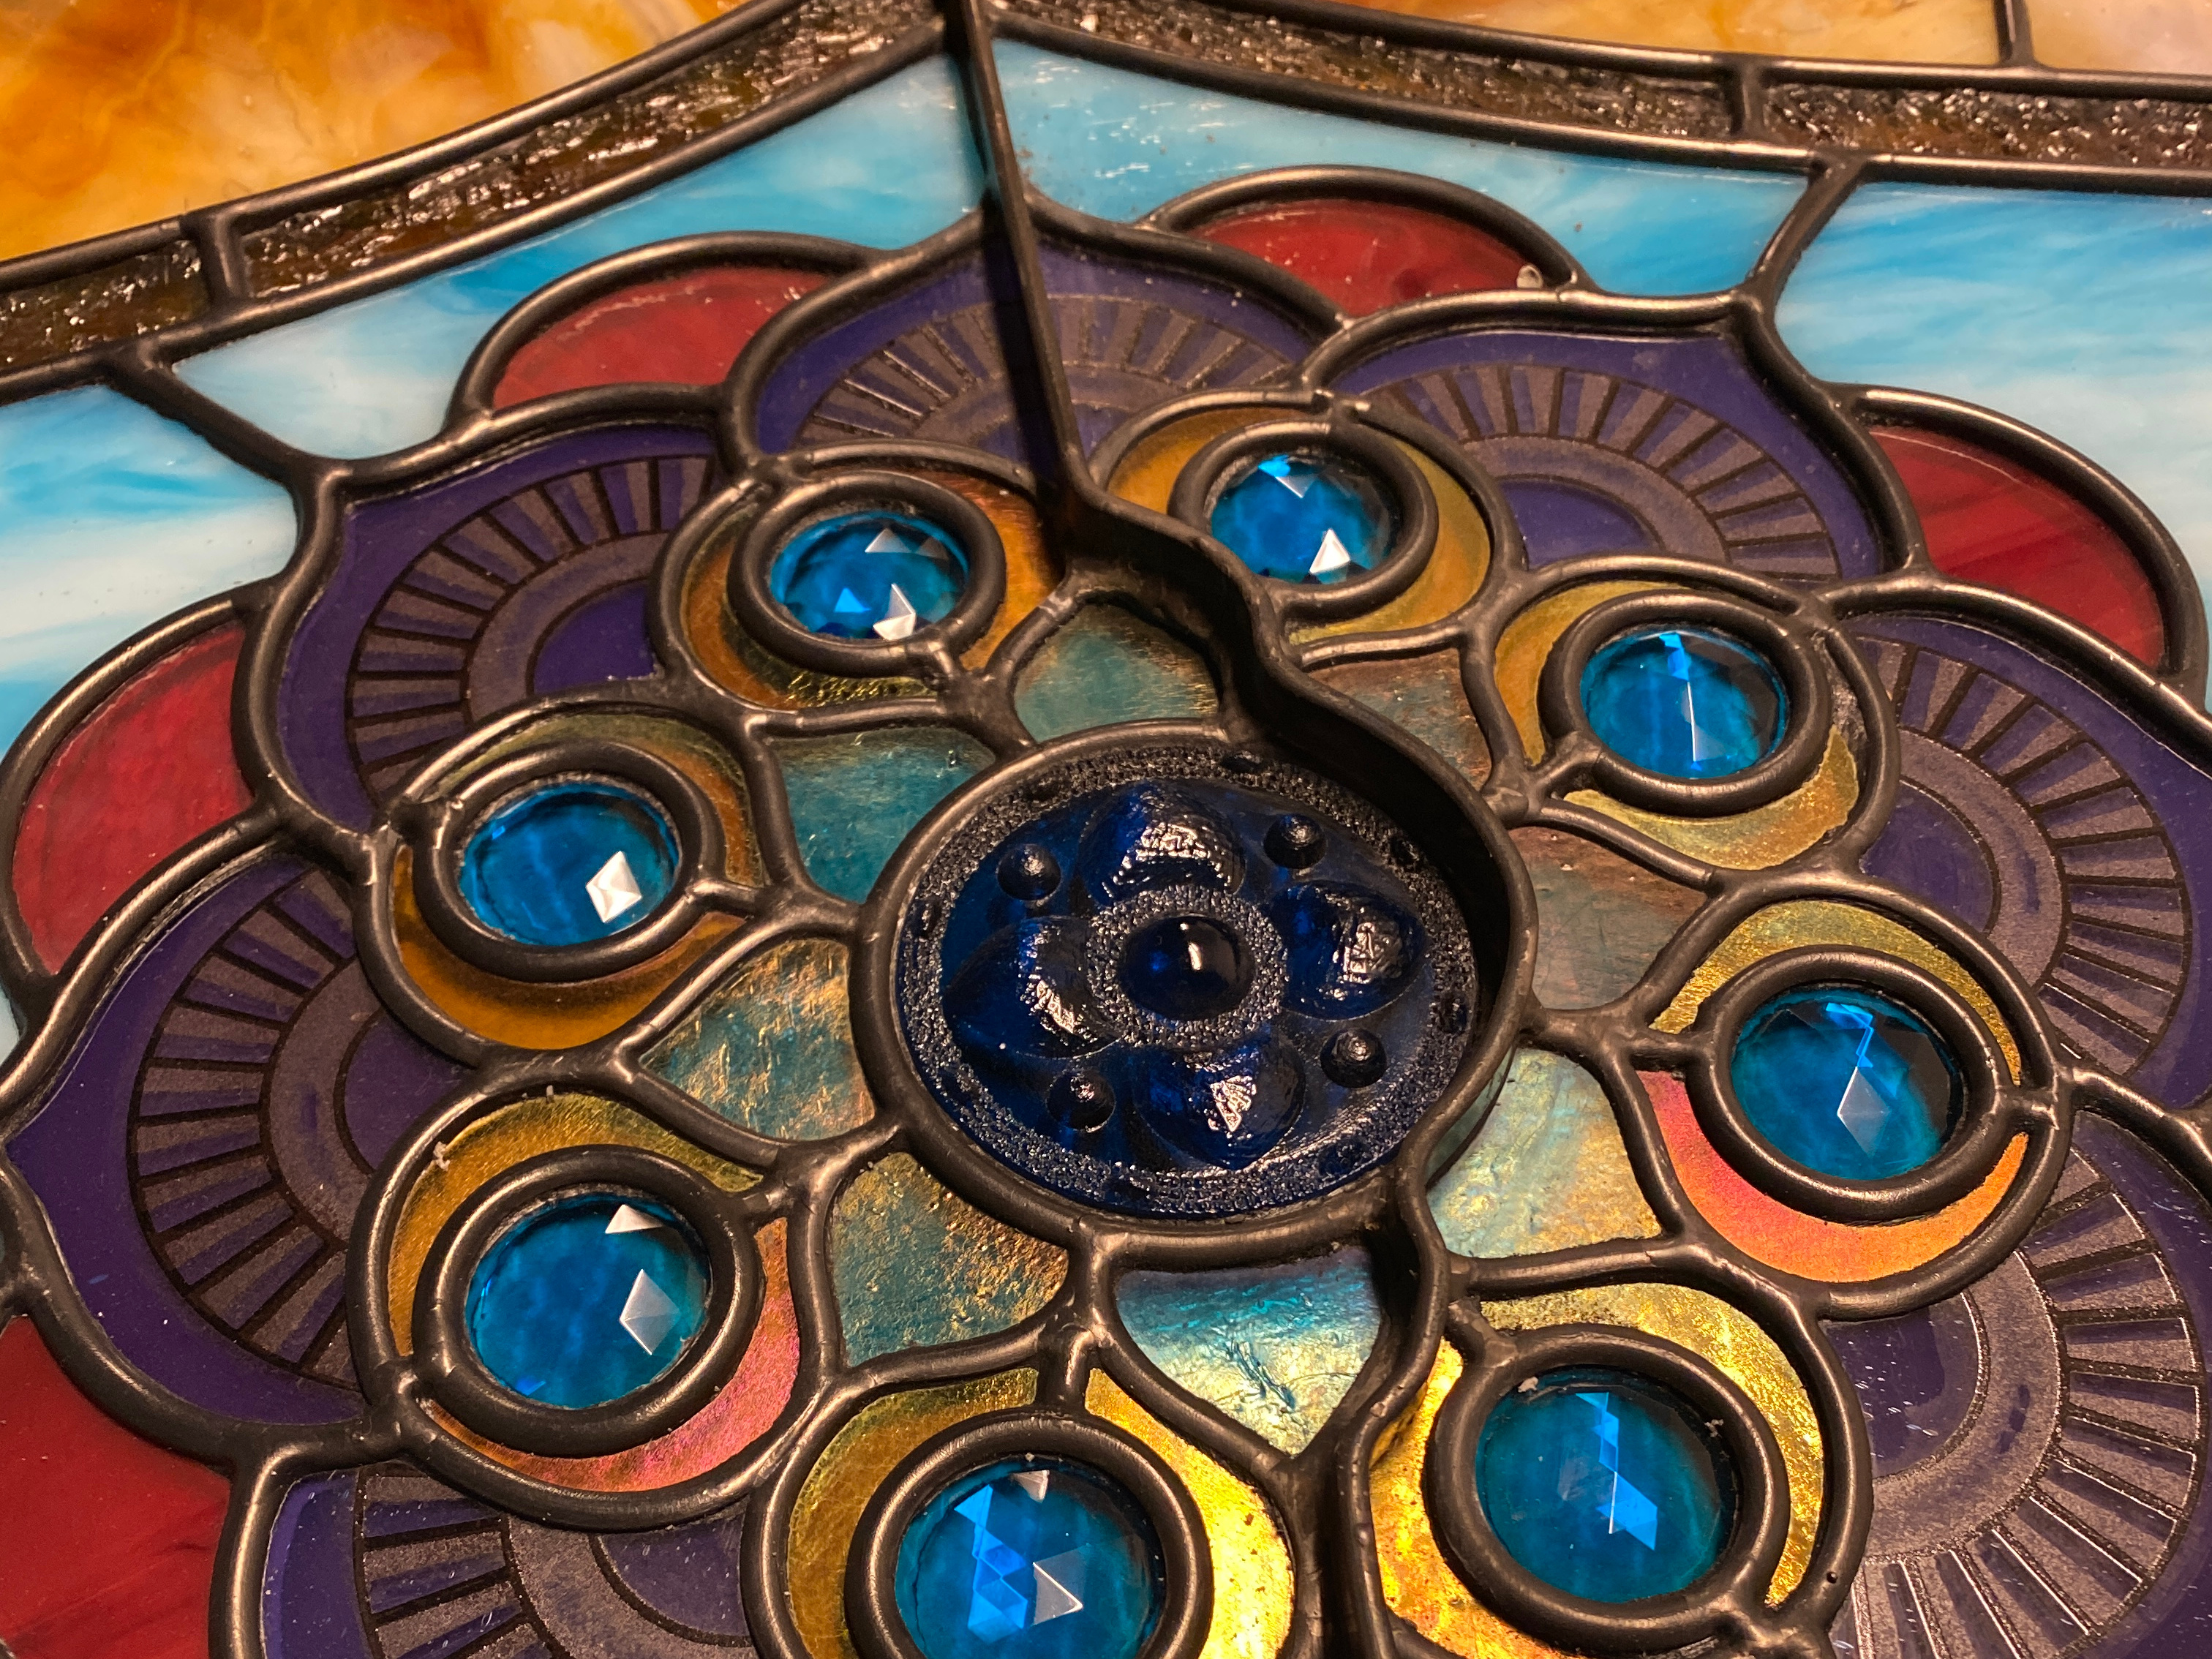 Stained glass studio, stained glass maker